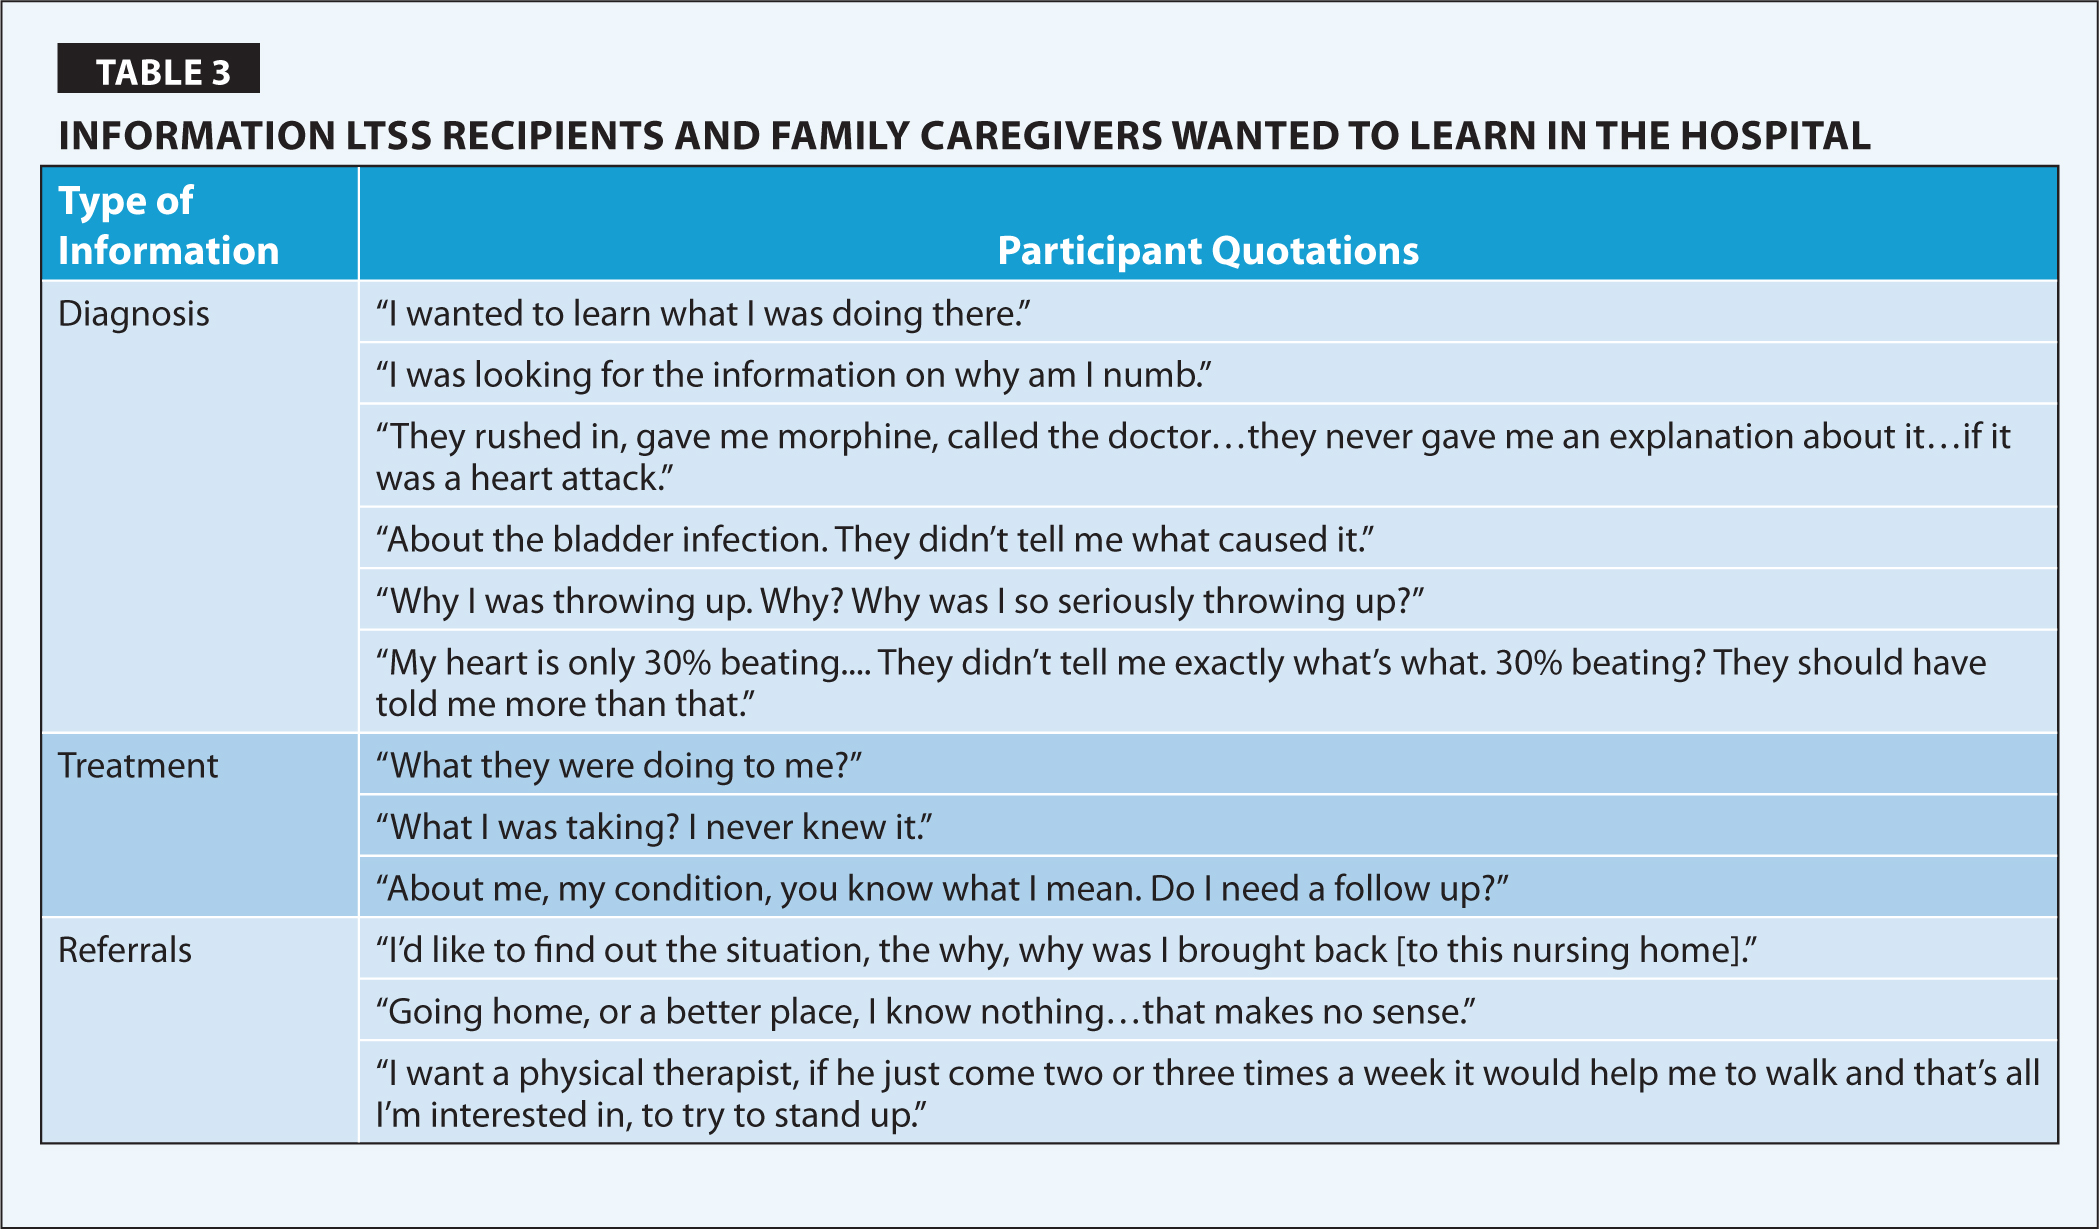 Information LTSS Recipients and Family Caregivers Wanted to Learn in the Hospital